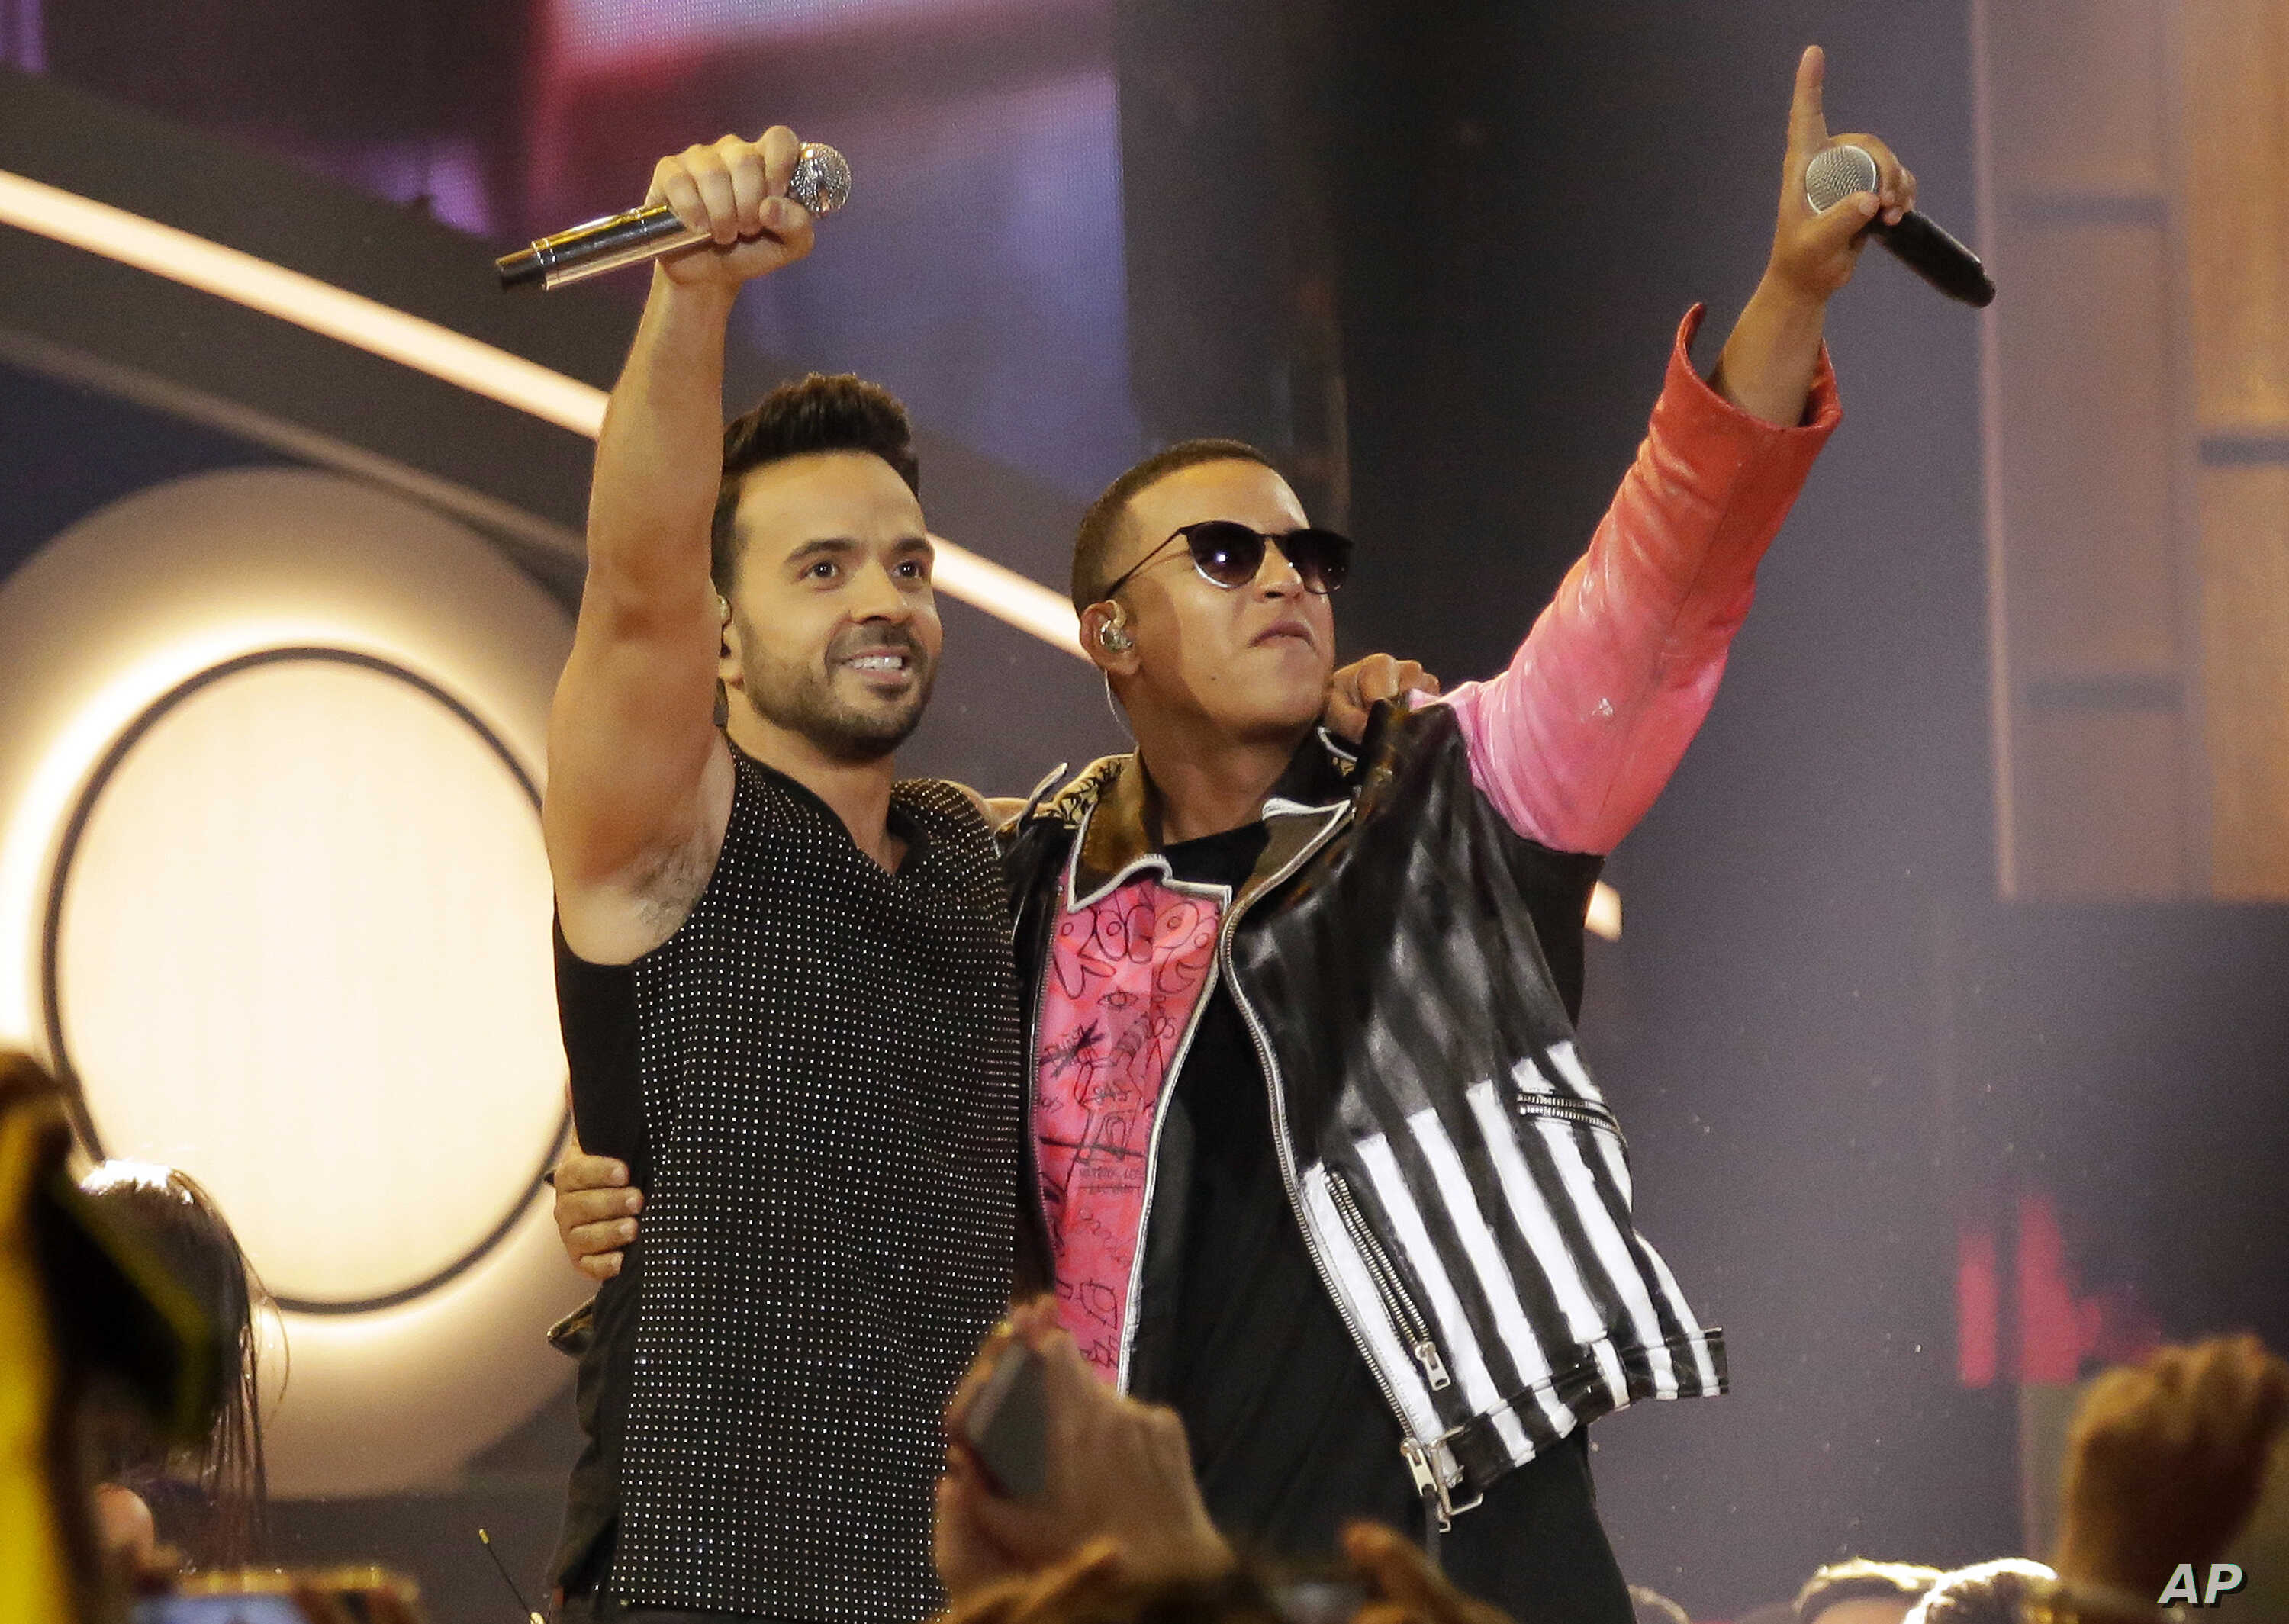 Despacito' Opening Doors for Spanish Songs on English Radio | Voice